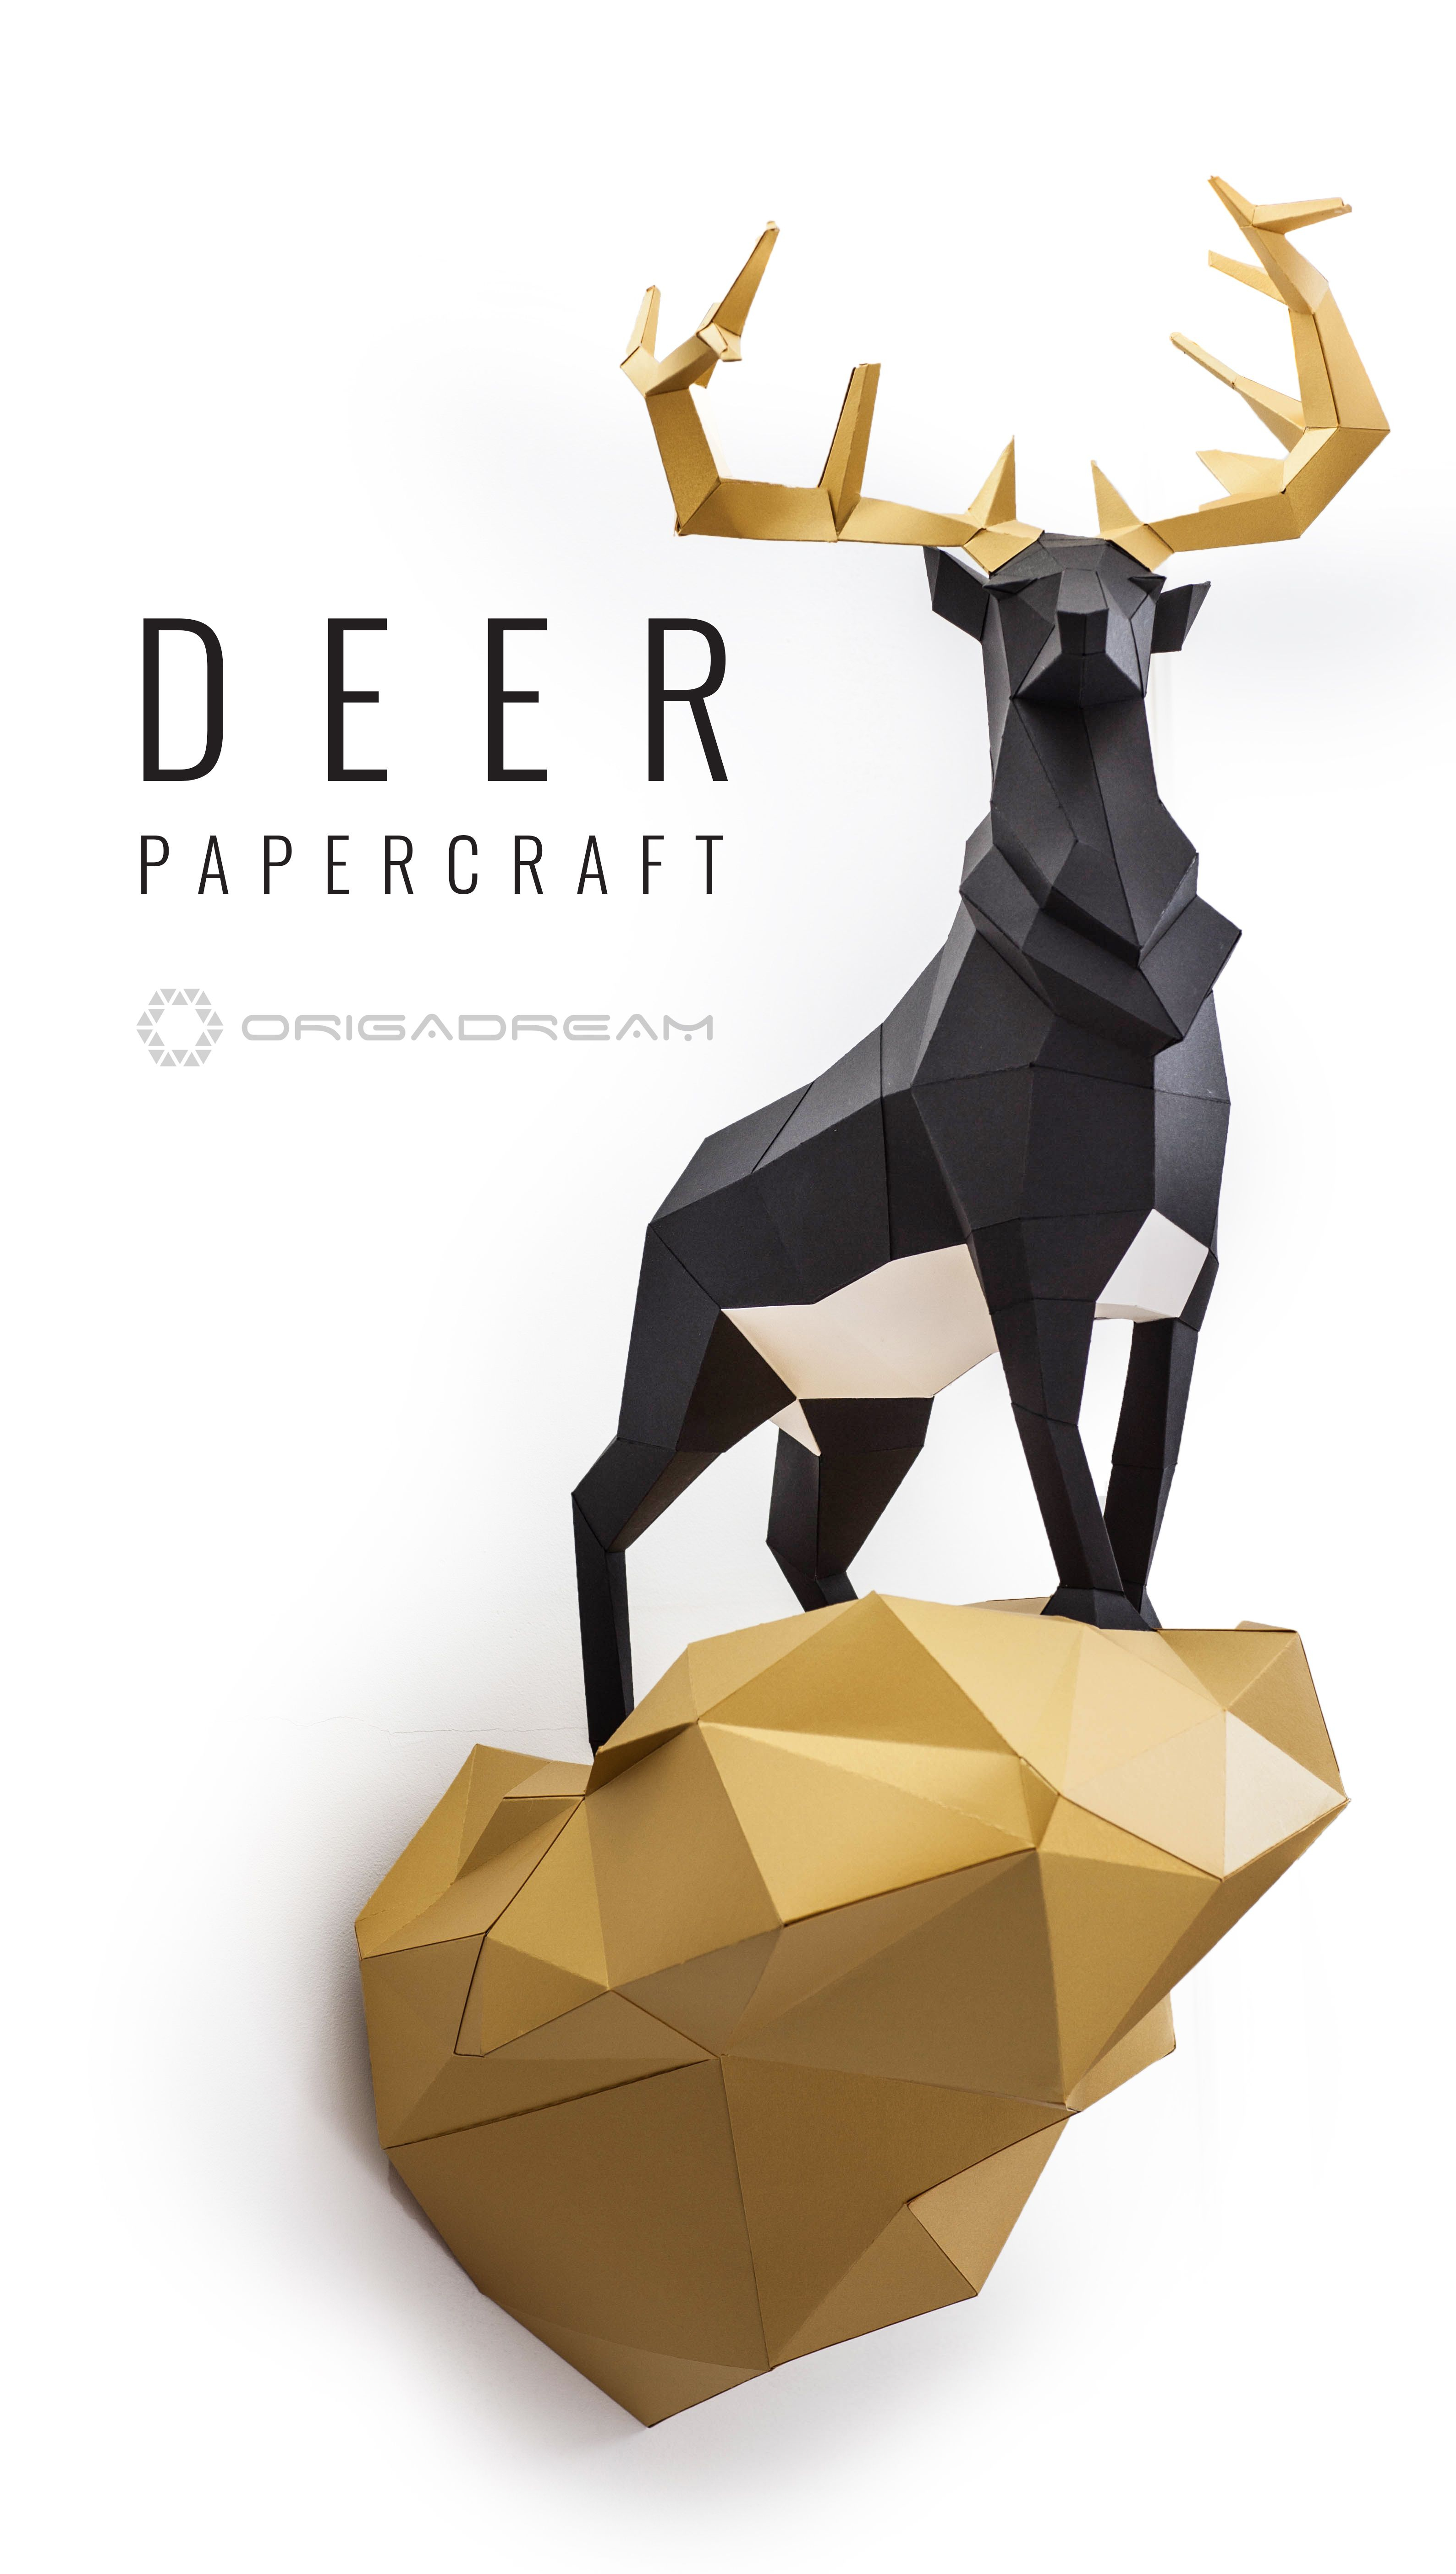 Deer #papercraft #paper #craft #diy #sculpture #decor #homedecor - Printable Origami Puzzle